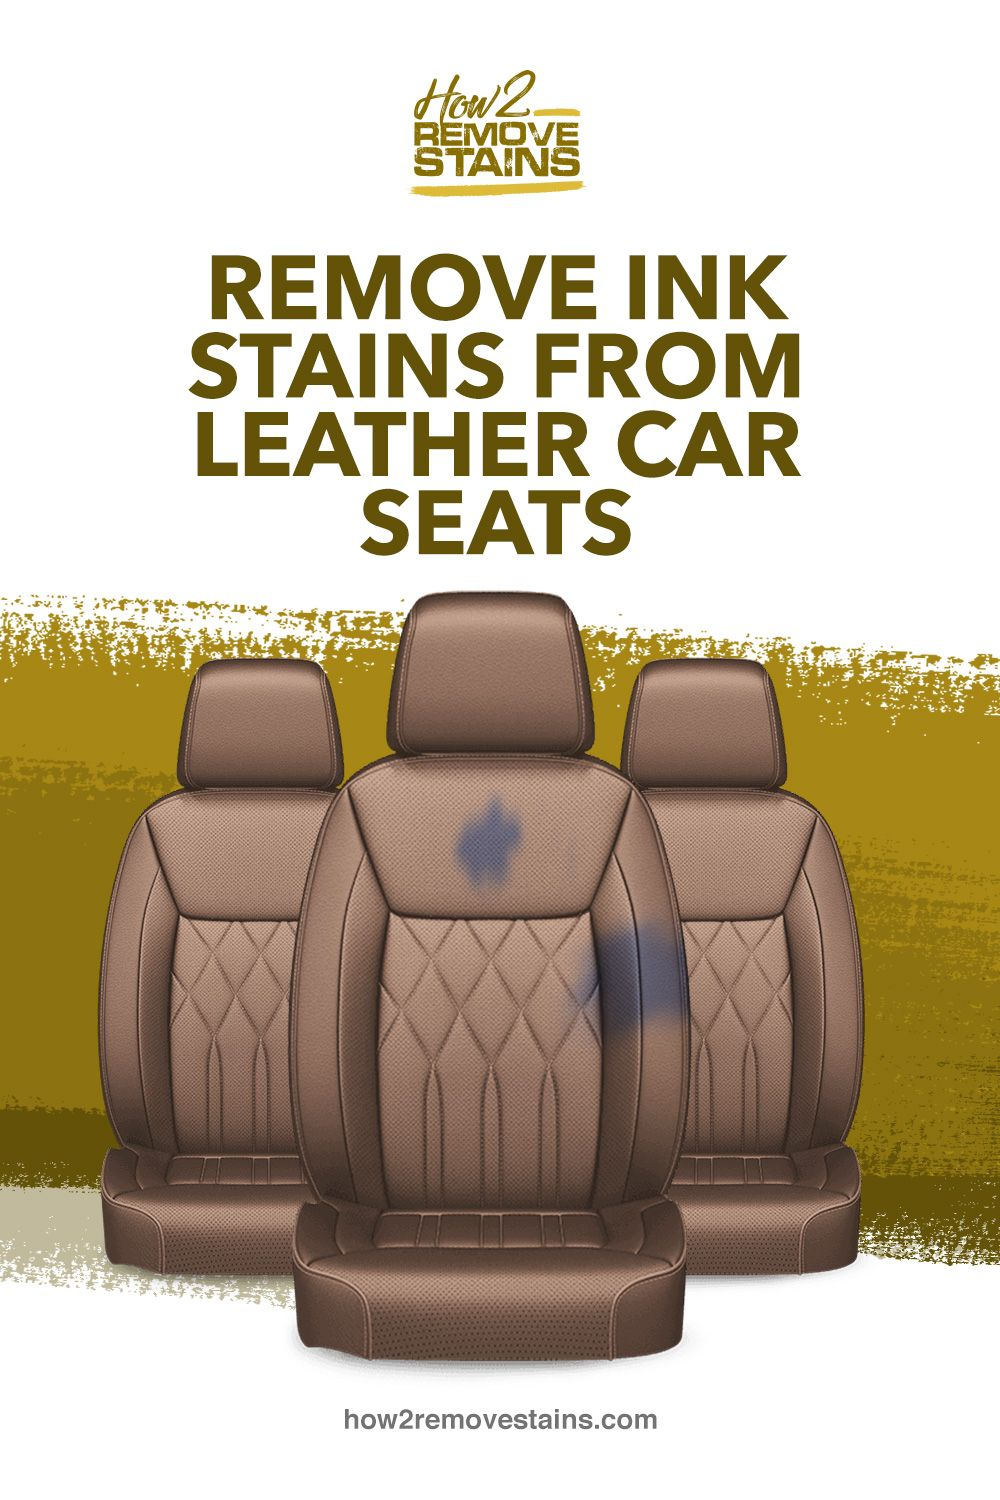 How to remove ink stains from leather car seats [ Detailed